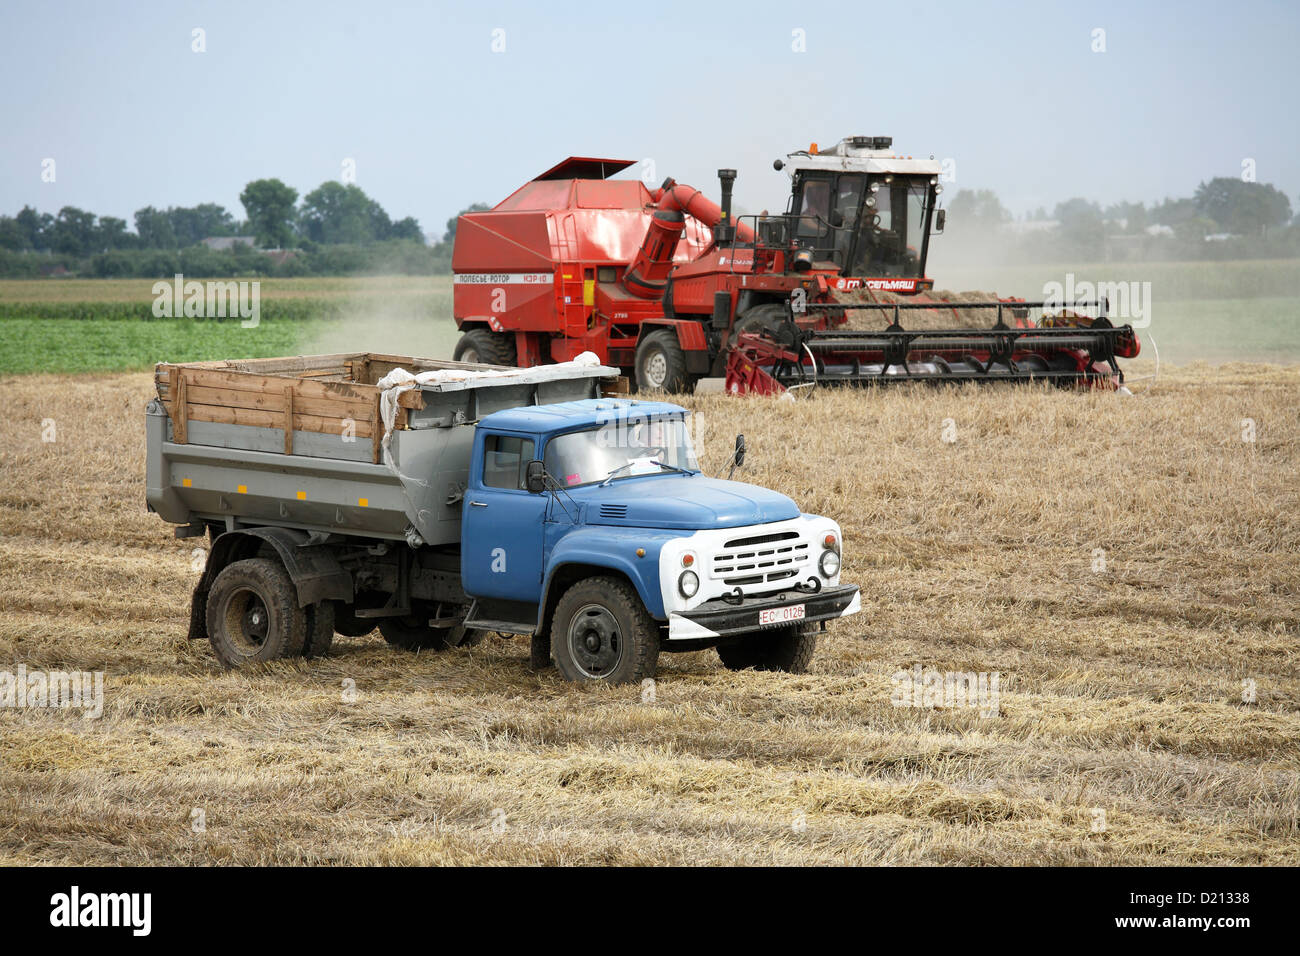 Gomel, Belarus, harvest in an area that was affected by the Chernobyl disaster in 1986 - Stock Image